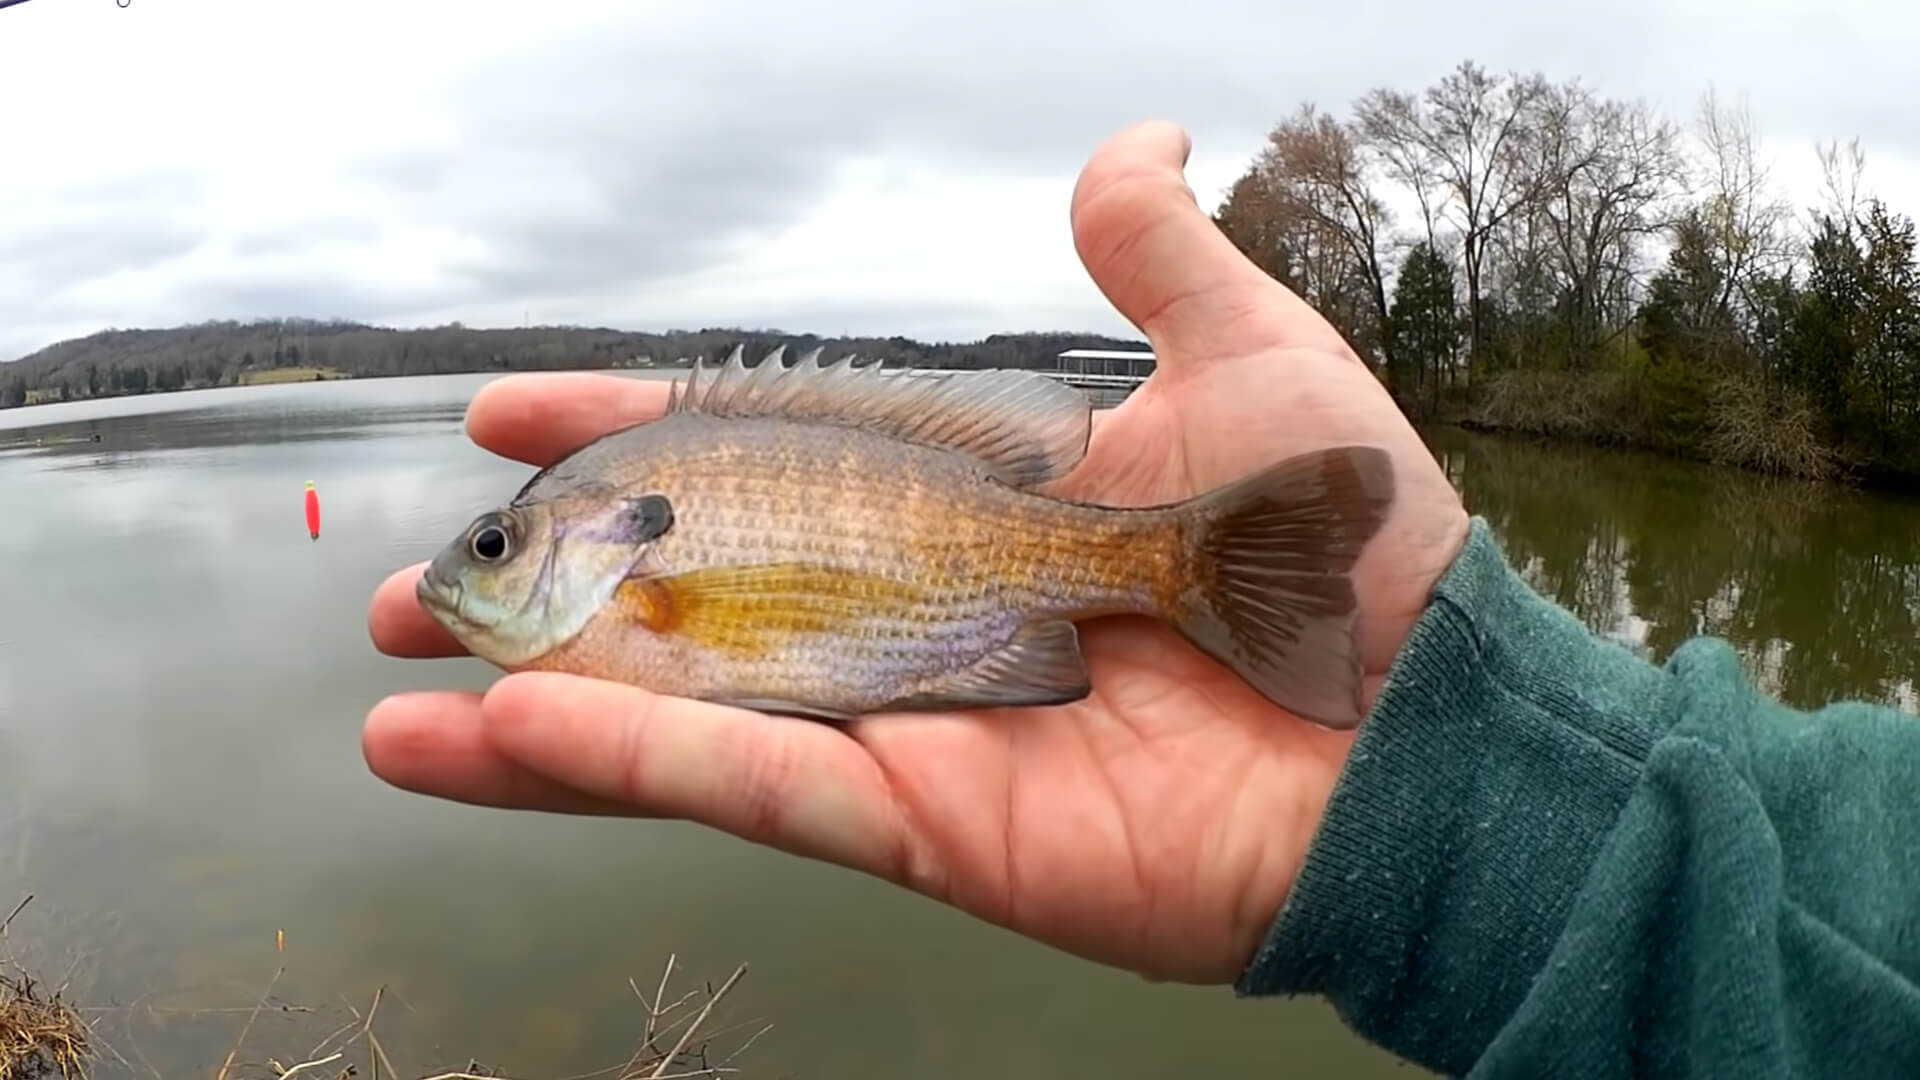 Spring Fishing During a Cold Front Tricky Fishing in Tough Conditions - Realistic Fishing